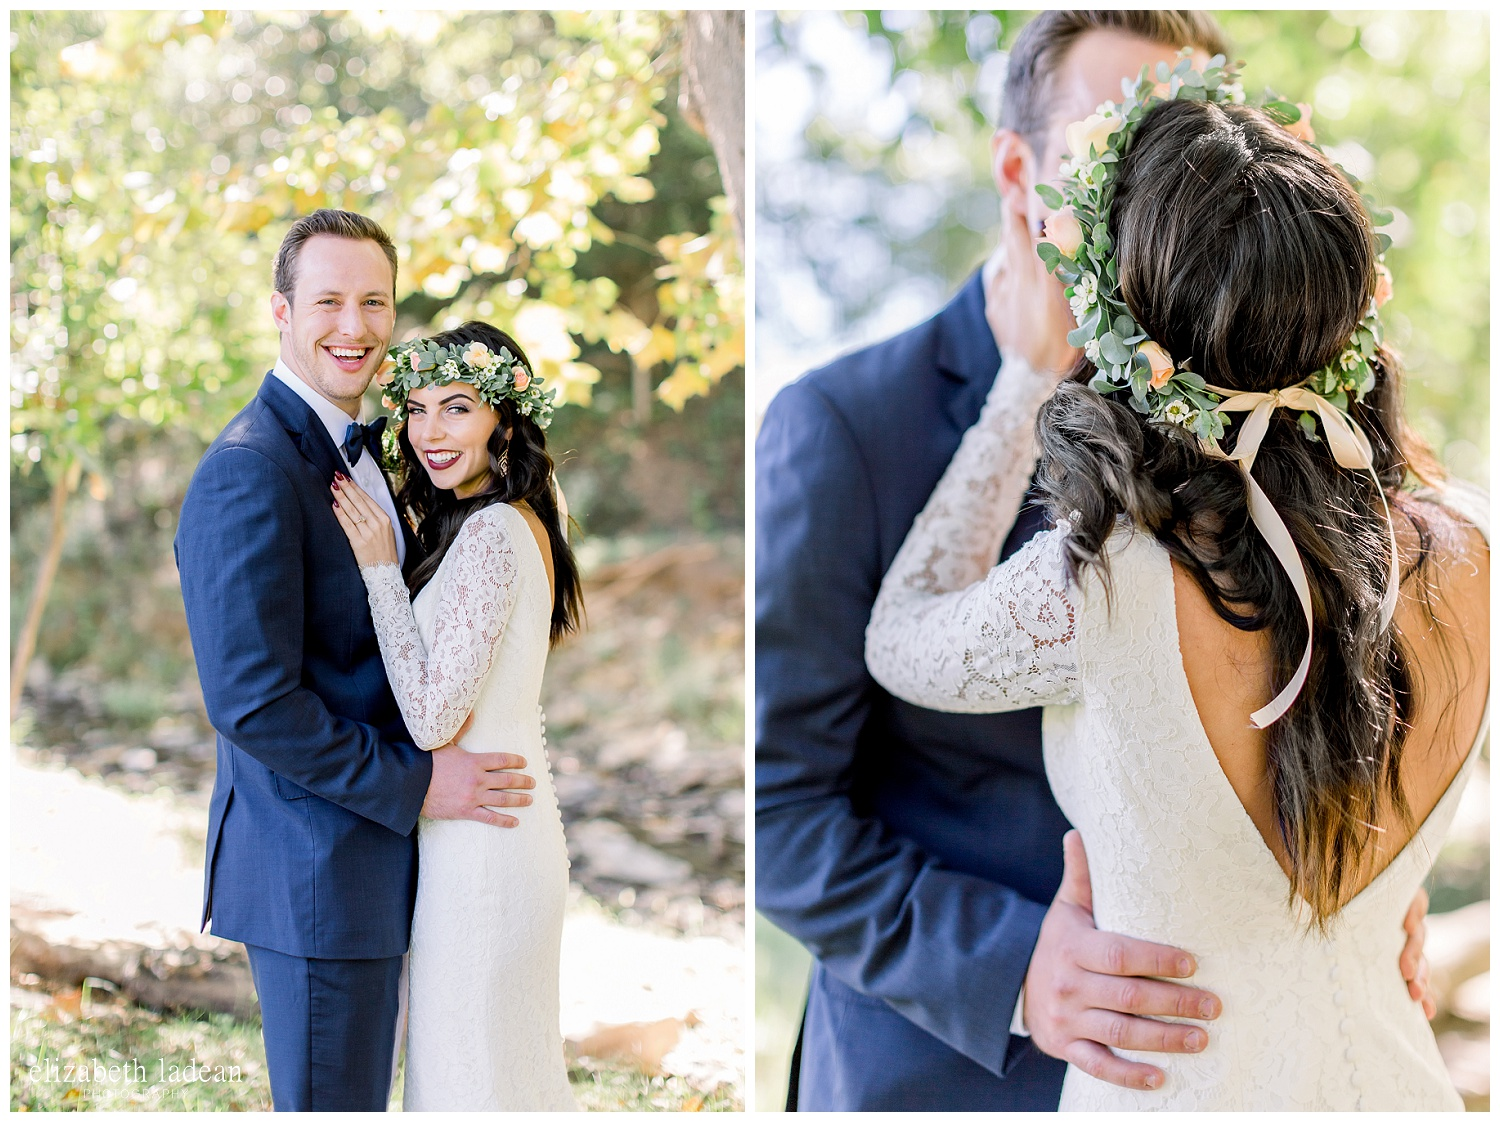 Willow-Creek-Blush-and-Blues-Outdoor-Wedding-Photography-S+Z2018-elizabeth-ladean-photography-photo_0534.jpg